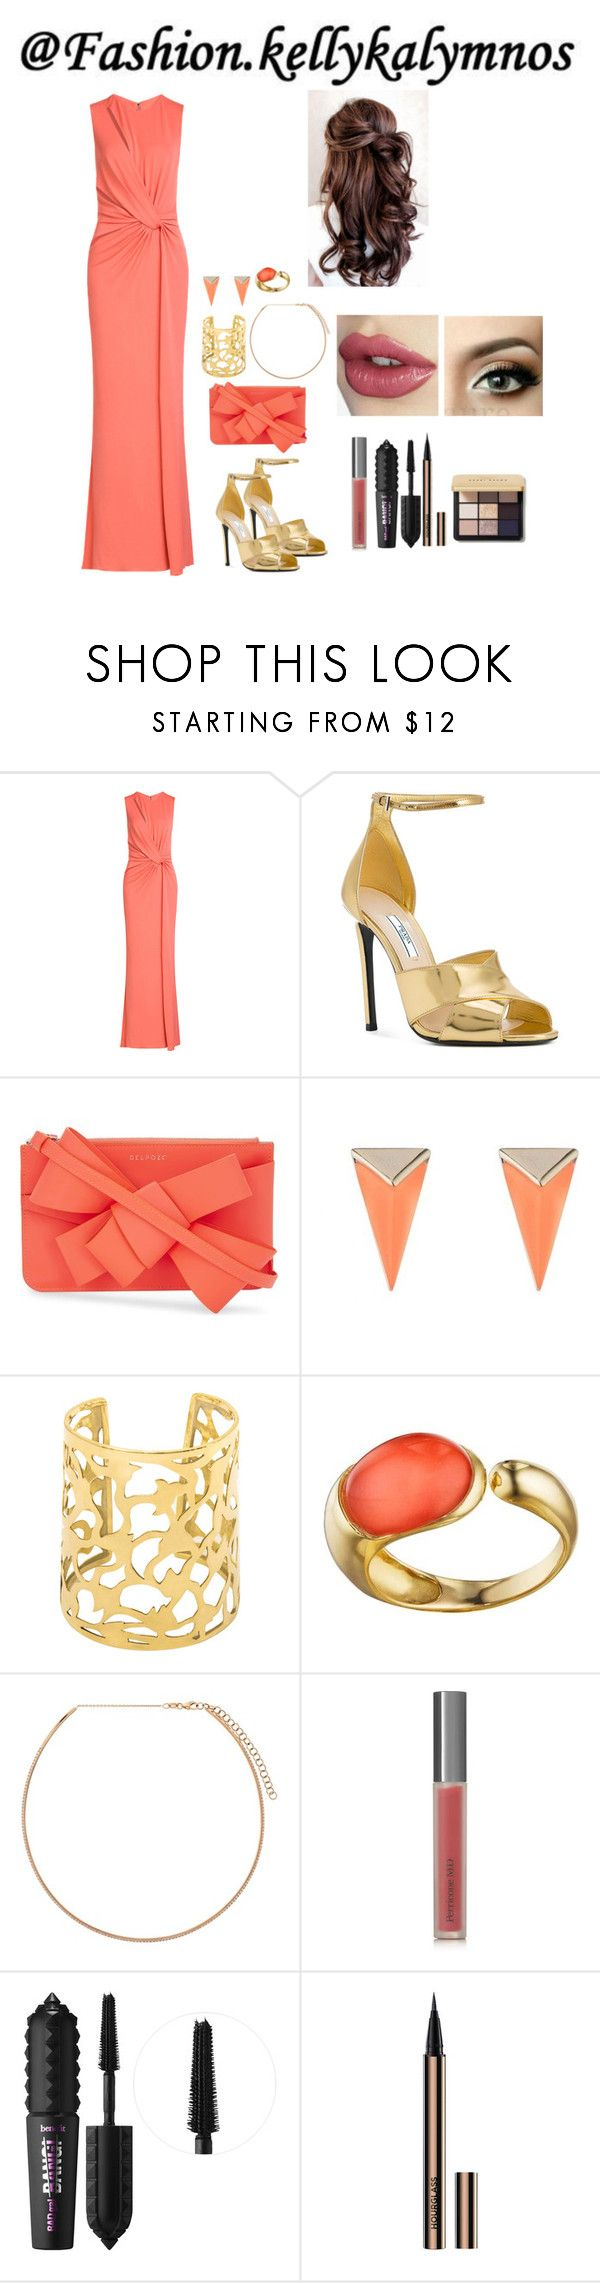 """Coral dress"" by fashion-kellykalymnos on Polyvore featuring Elie Saab, Prada, Delpozo, Alexis Bittar, Faraone Mennella by R.F.M.A.S., Diane Kordas, Perricone MD, Benefit and Bobbi Brown Cosmetics"